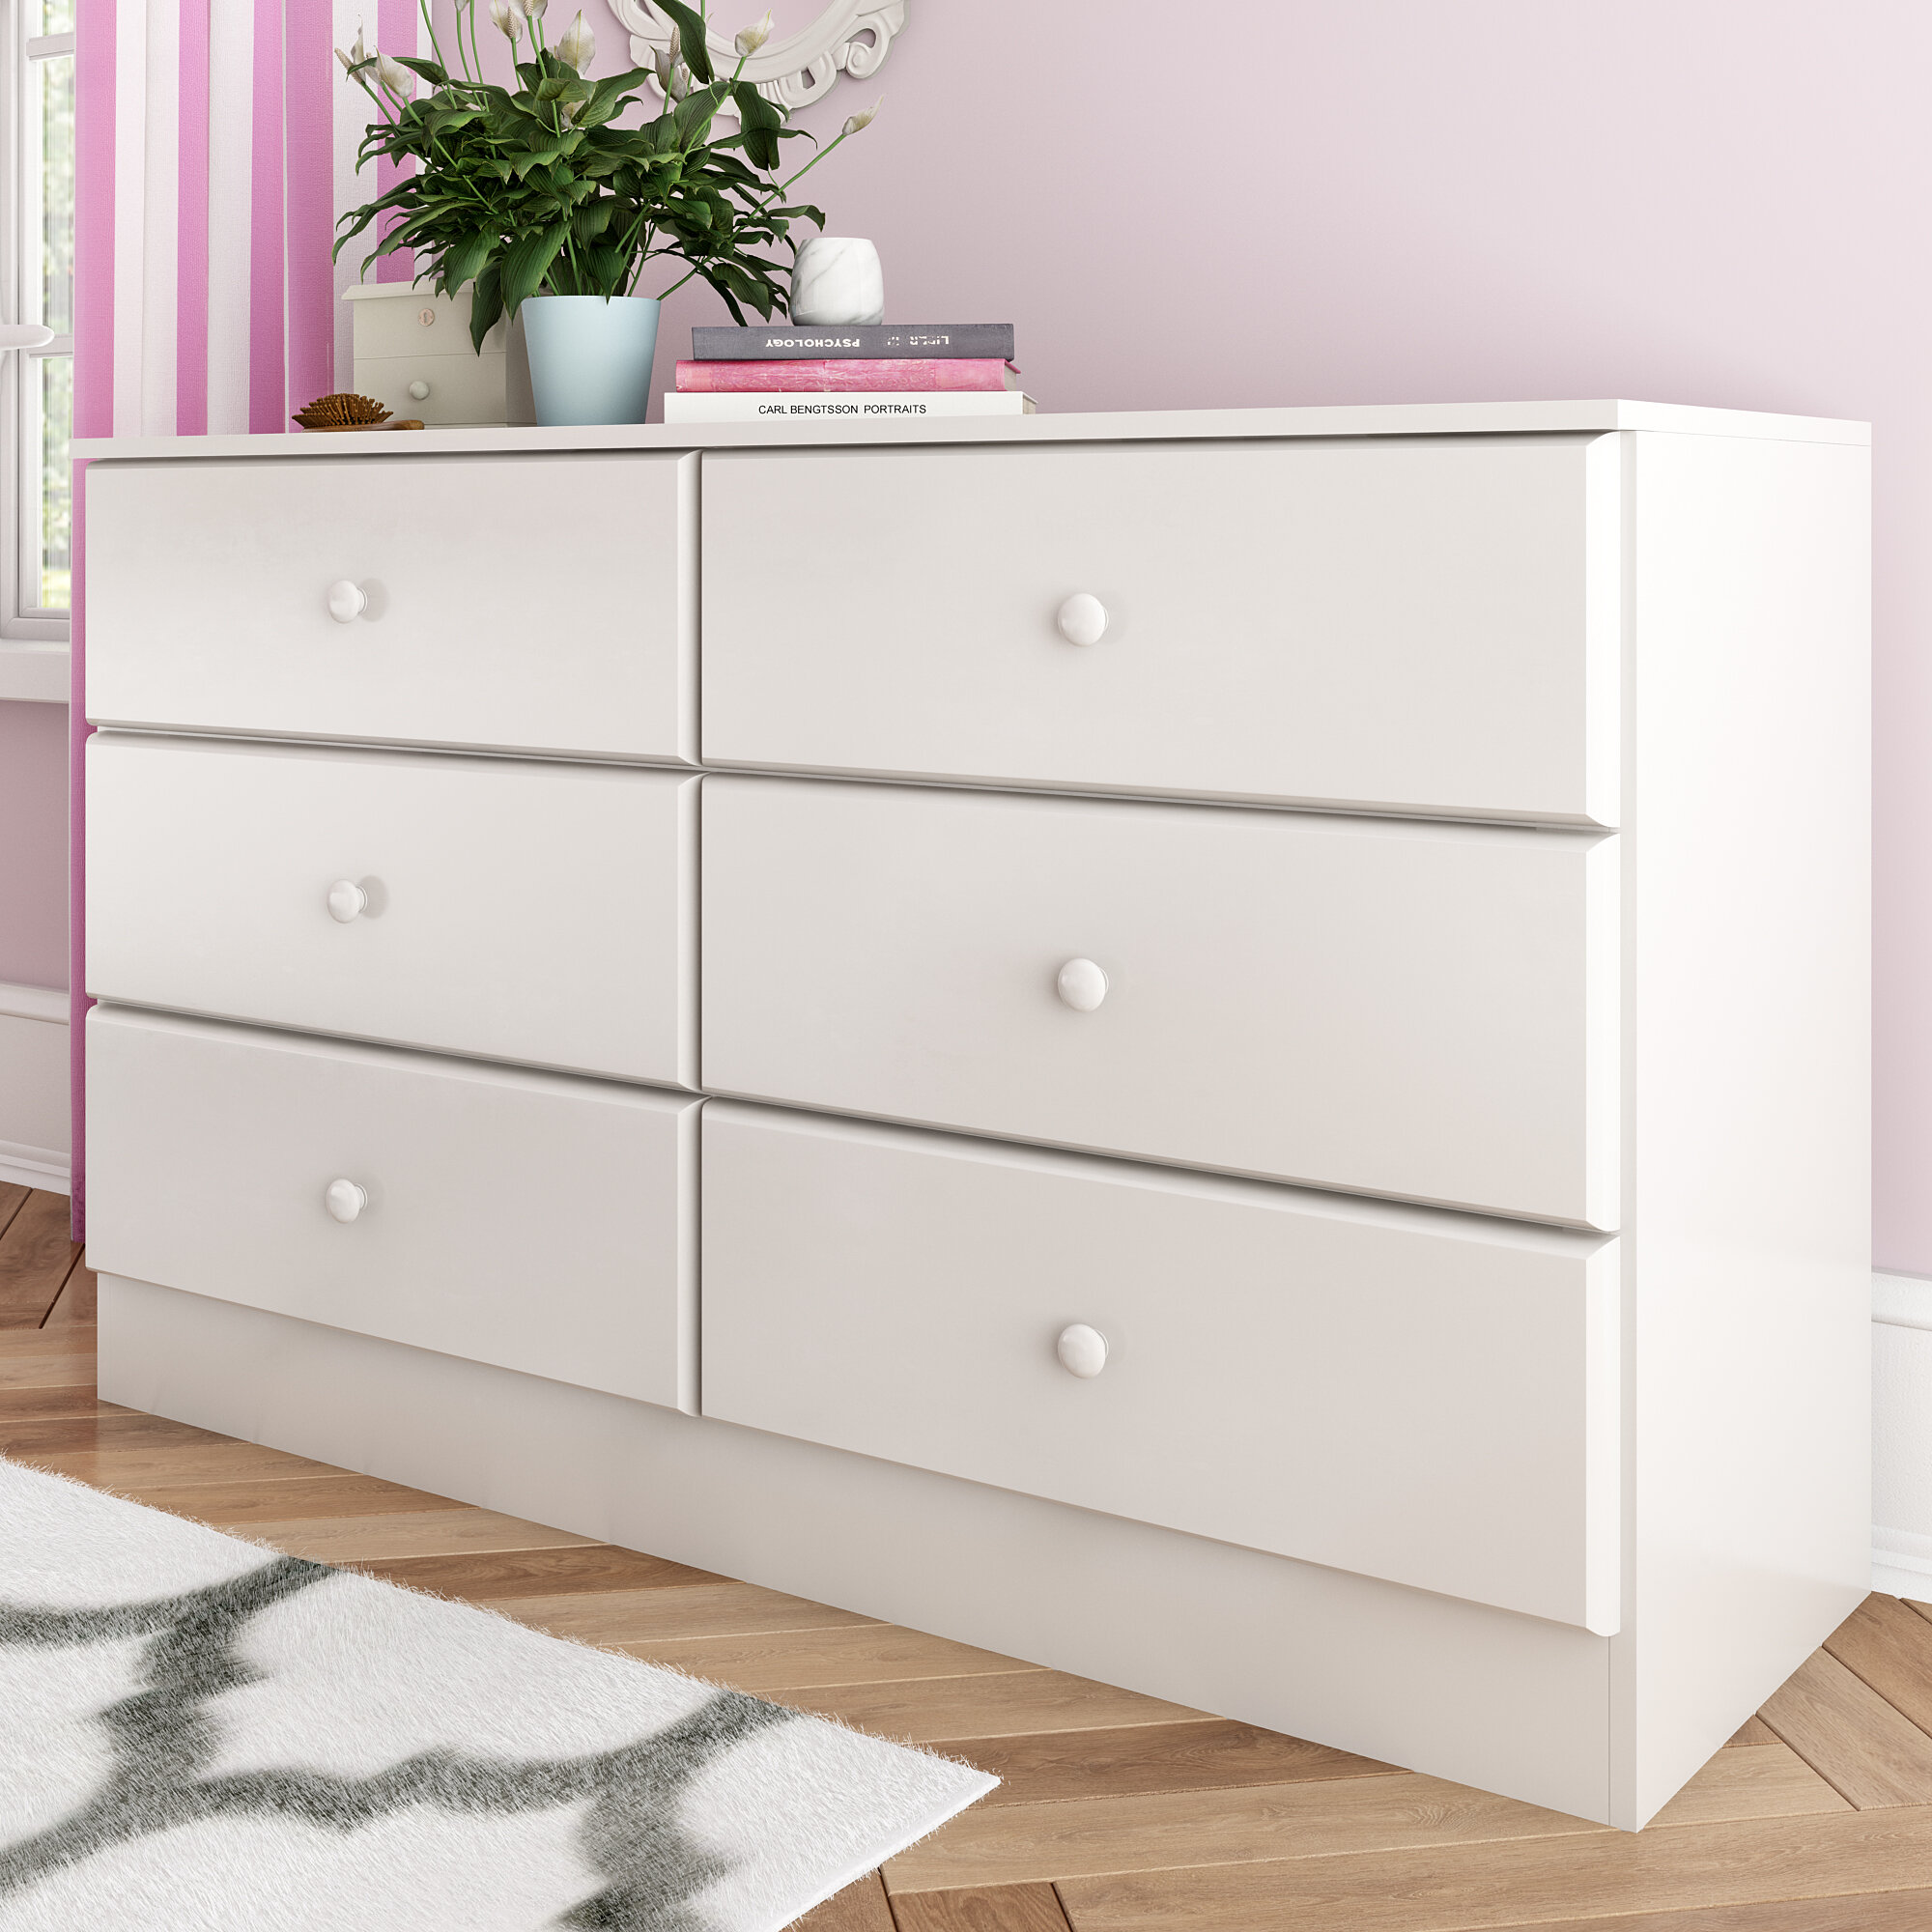 small mirrored round vintage metal goods drawer oak on end bedroom nightstands dixie for nightstand wide dressers drawers top dresser tables furniture fabulous lockers inch chest white inspirational cheap modern with of marble prices sale side wheels large wonderful bedside mirror antique home